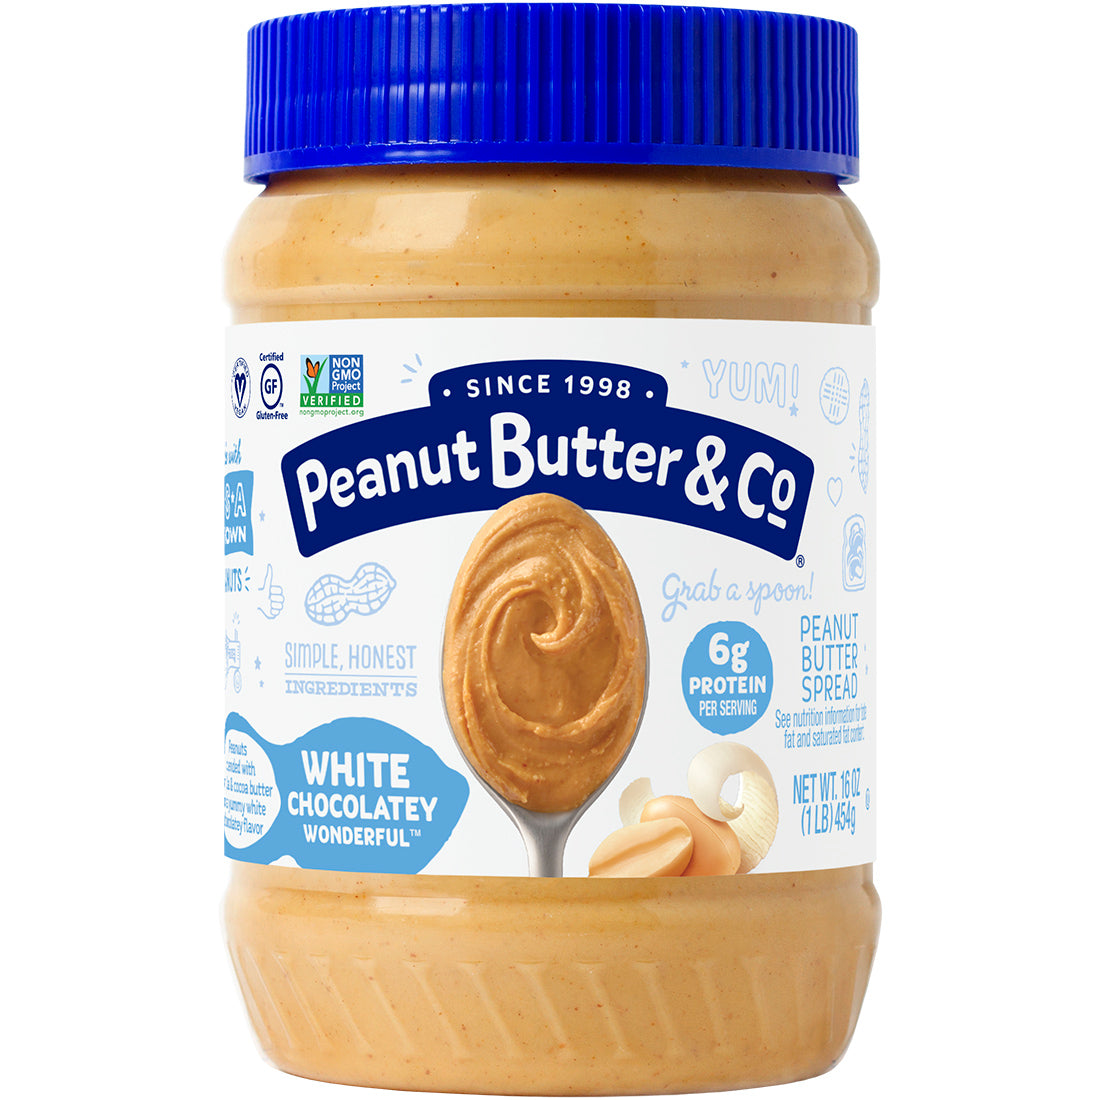 peanut butter and co reviews